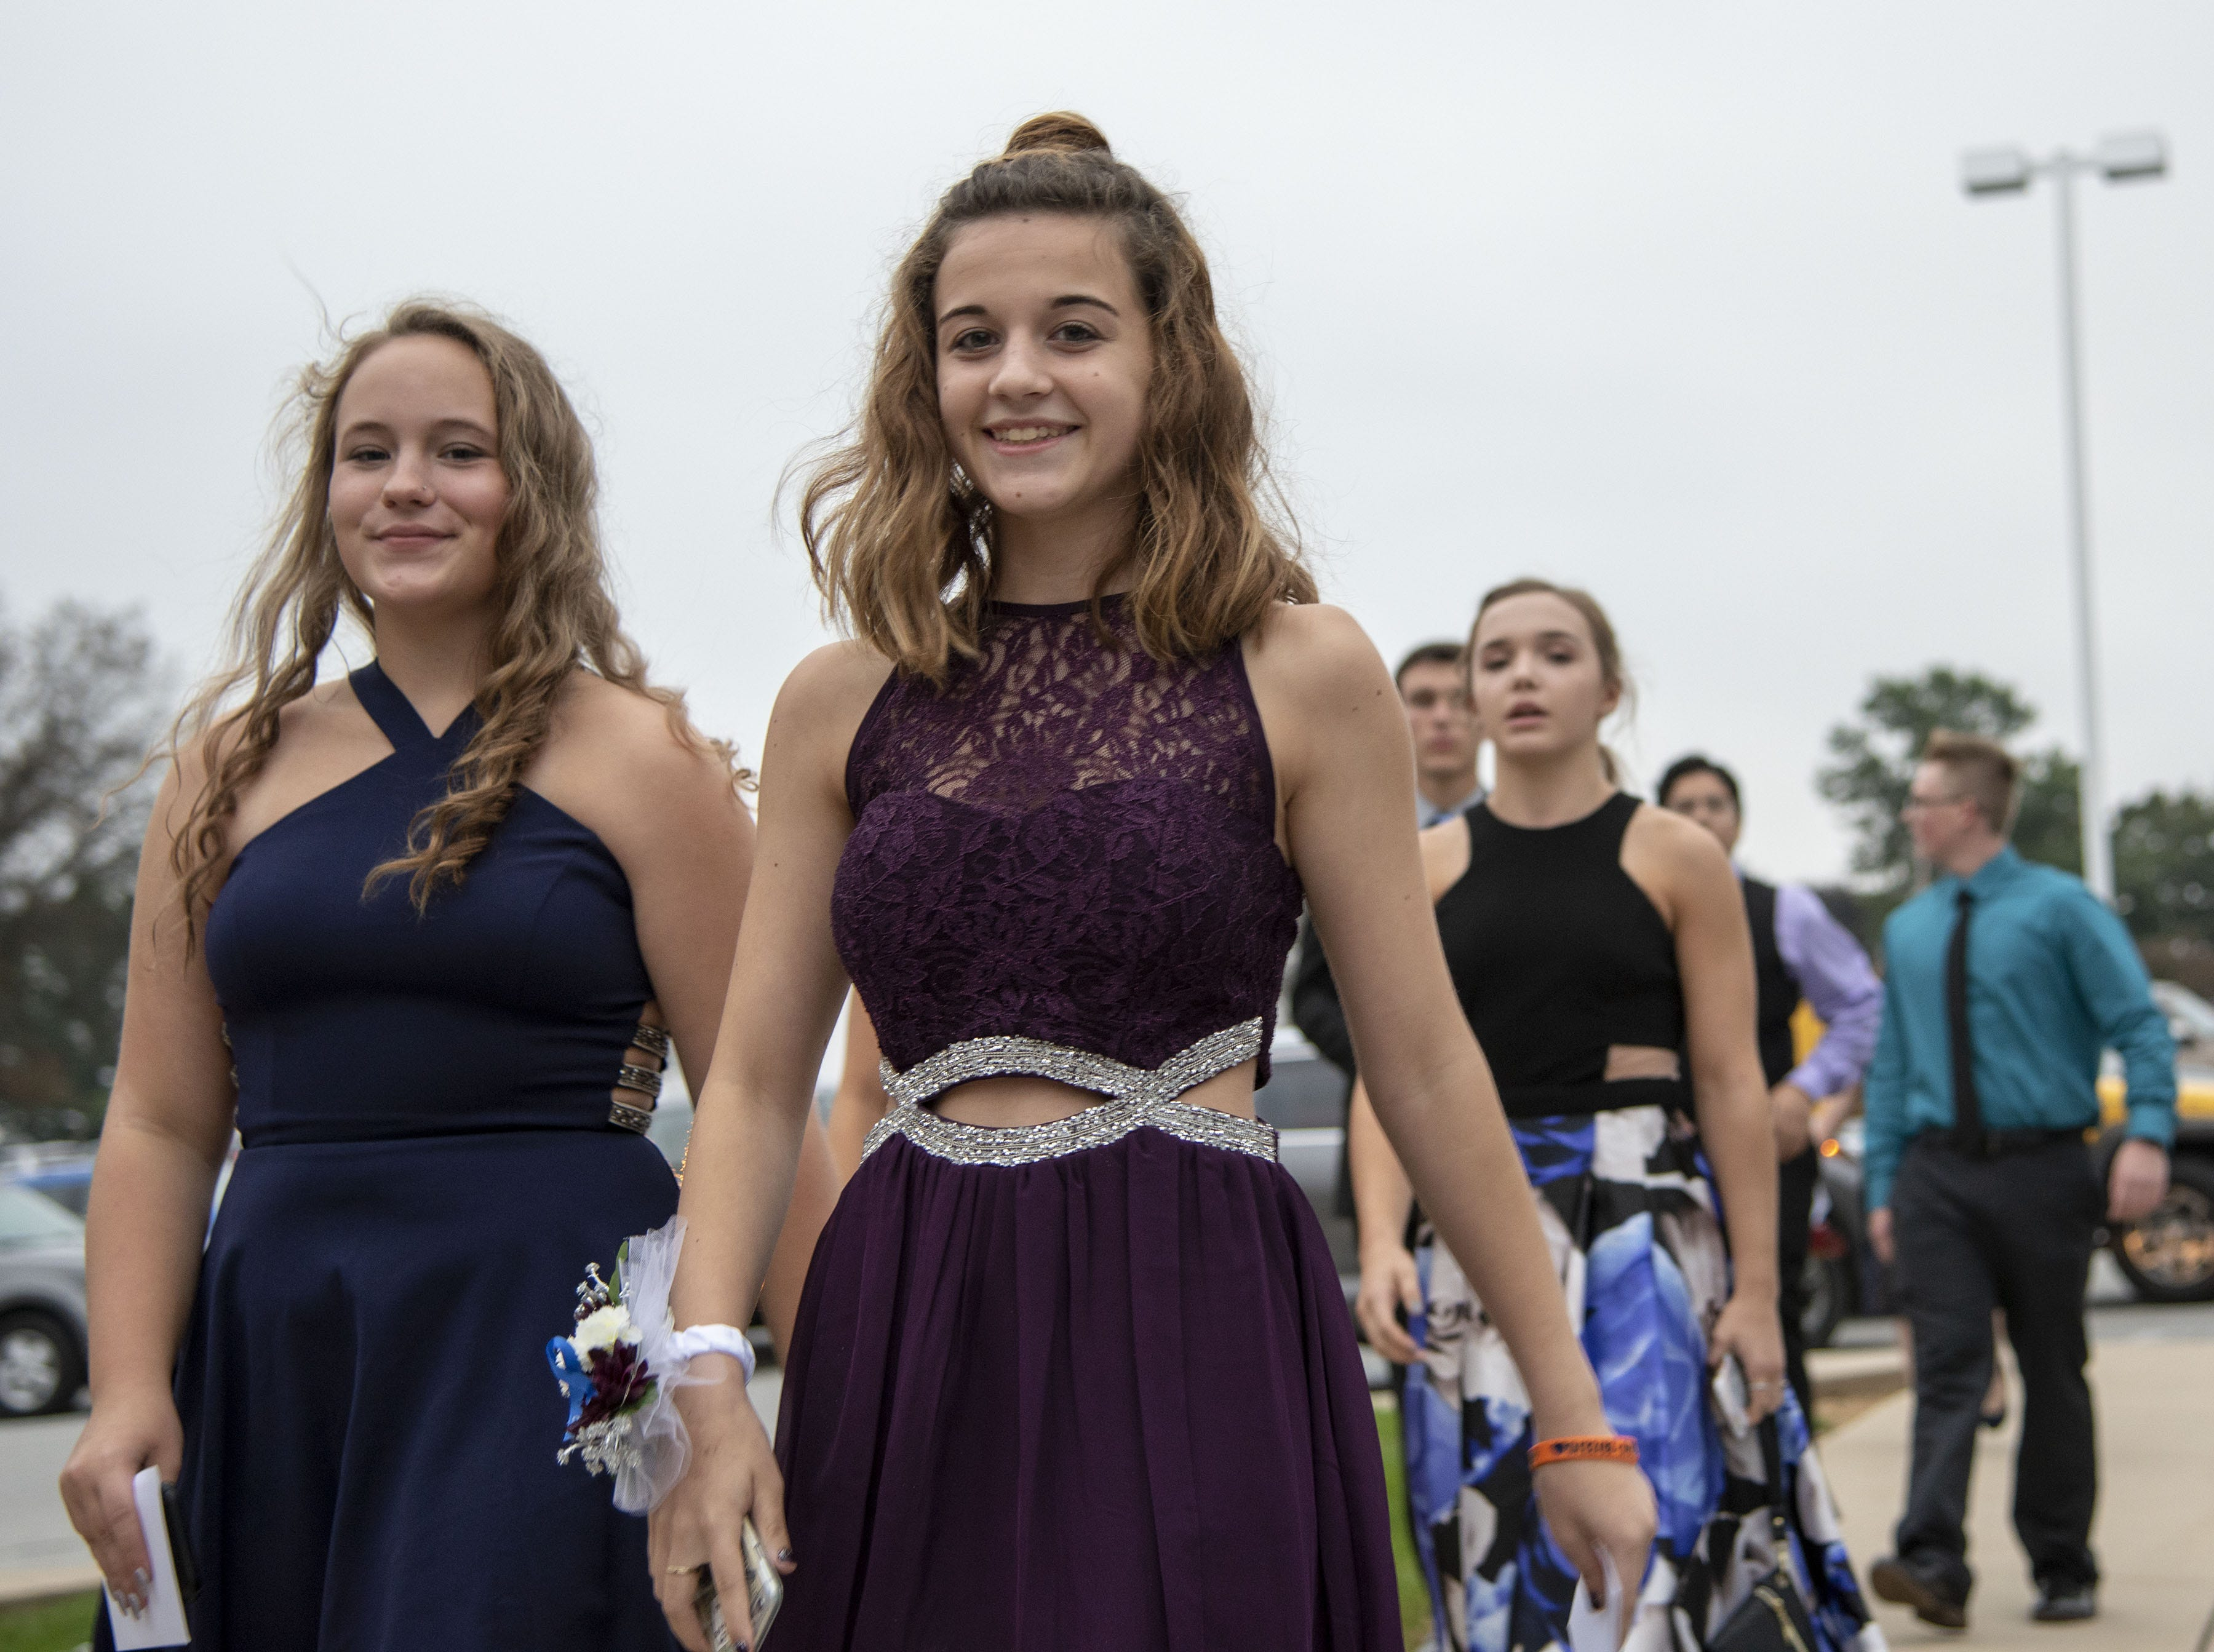 Students arrive for the Dallastown High School homecoming dance on Saturday, October 06, 2018.